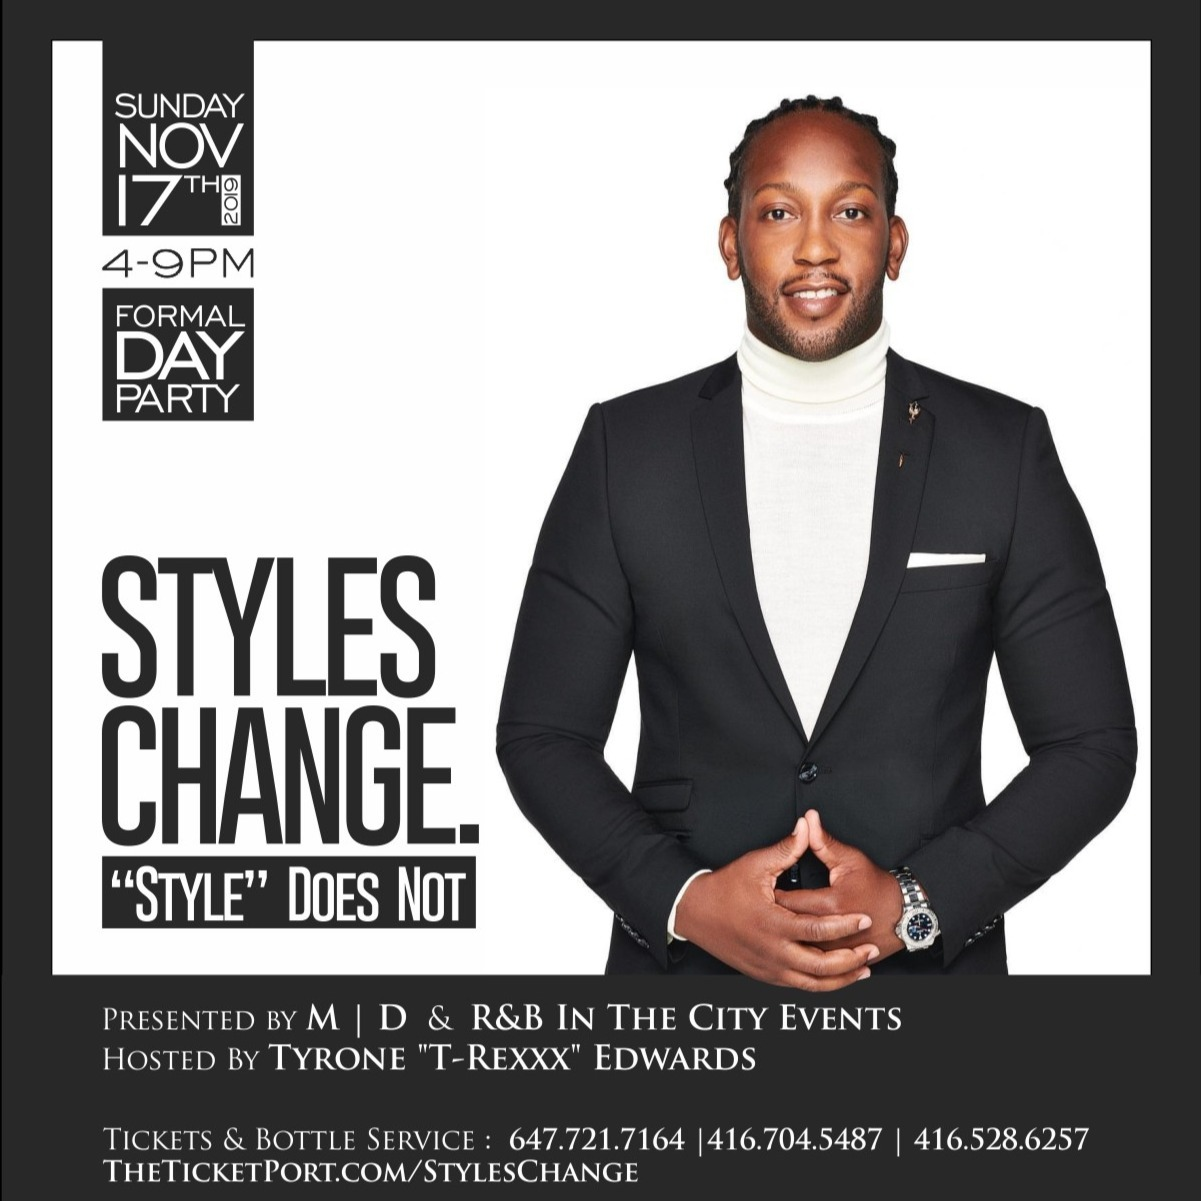 Styles Change Style Does Not